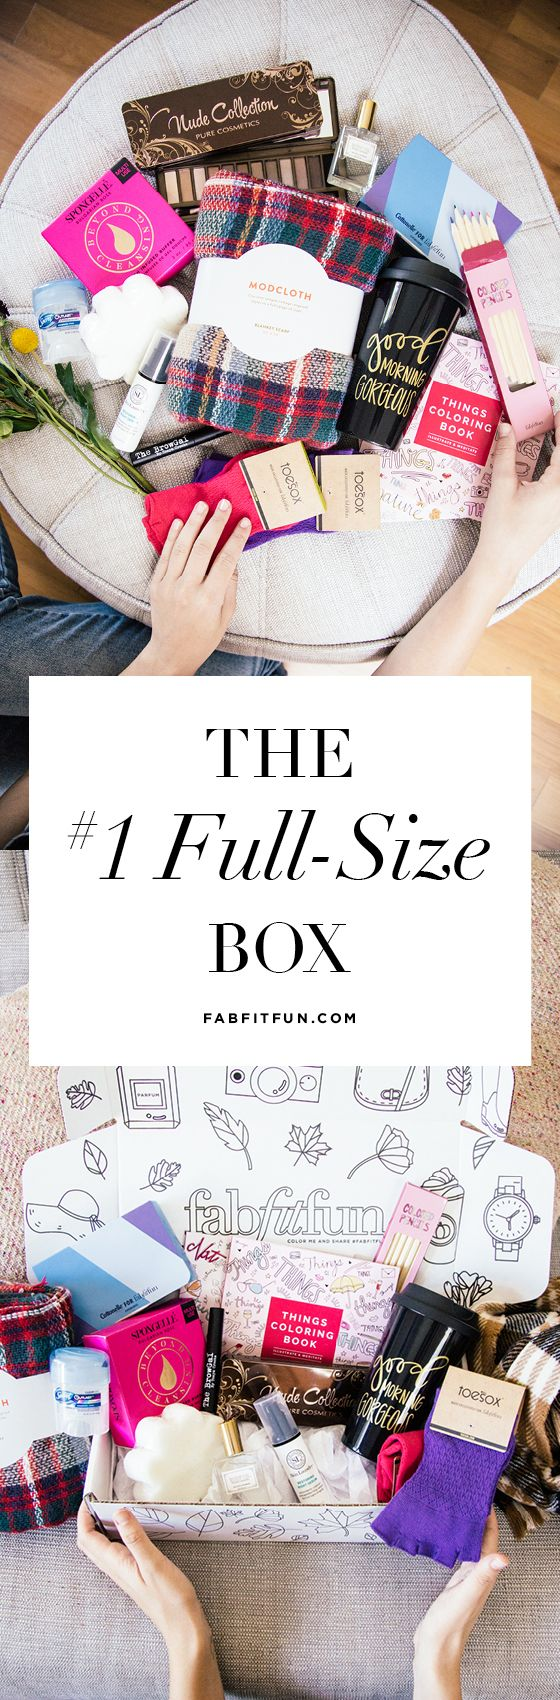 Fall into FabFitFun! Treat yourself to over $200 worth of huge full-size beauty, fashion, + fitness products for just $39.99 with code HAPPY